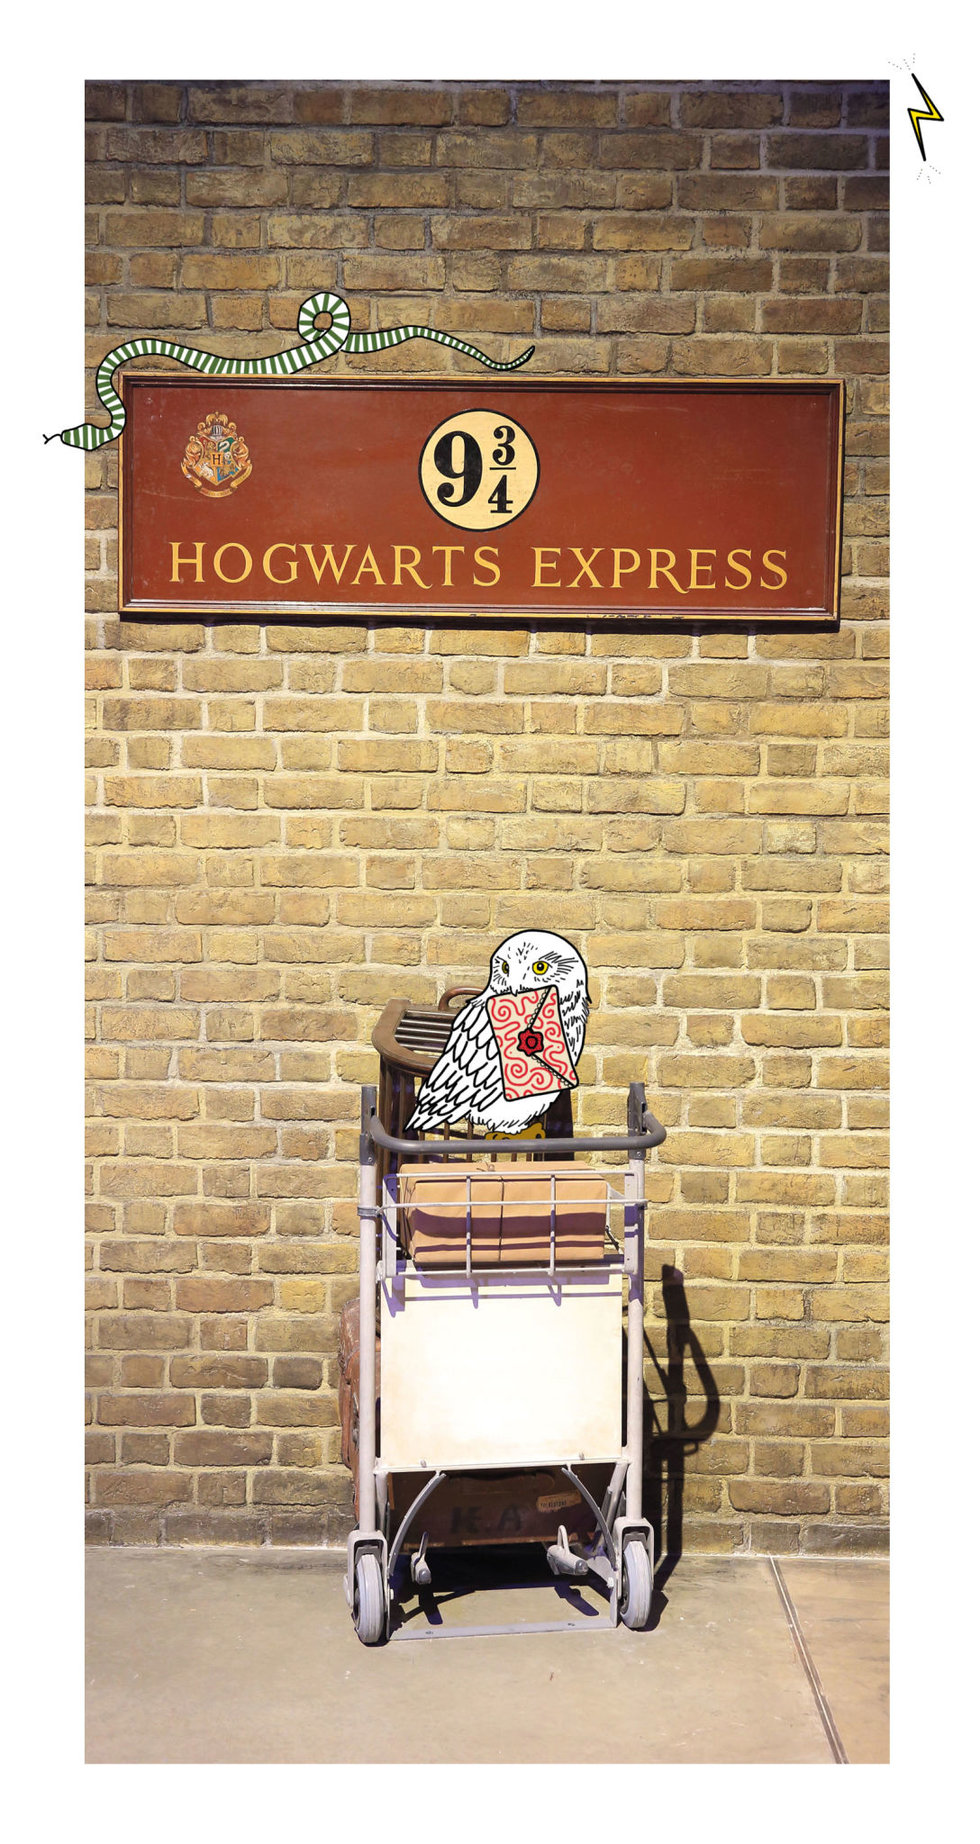 Illustration of platform 9 3/4 from the beloved Harry Potter movie